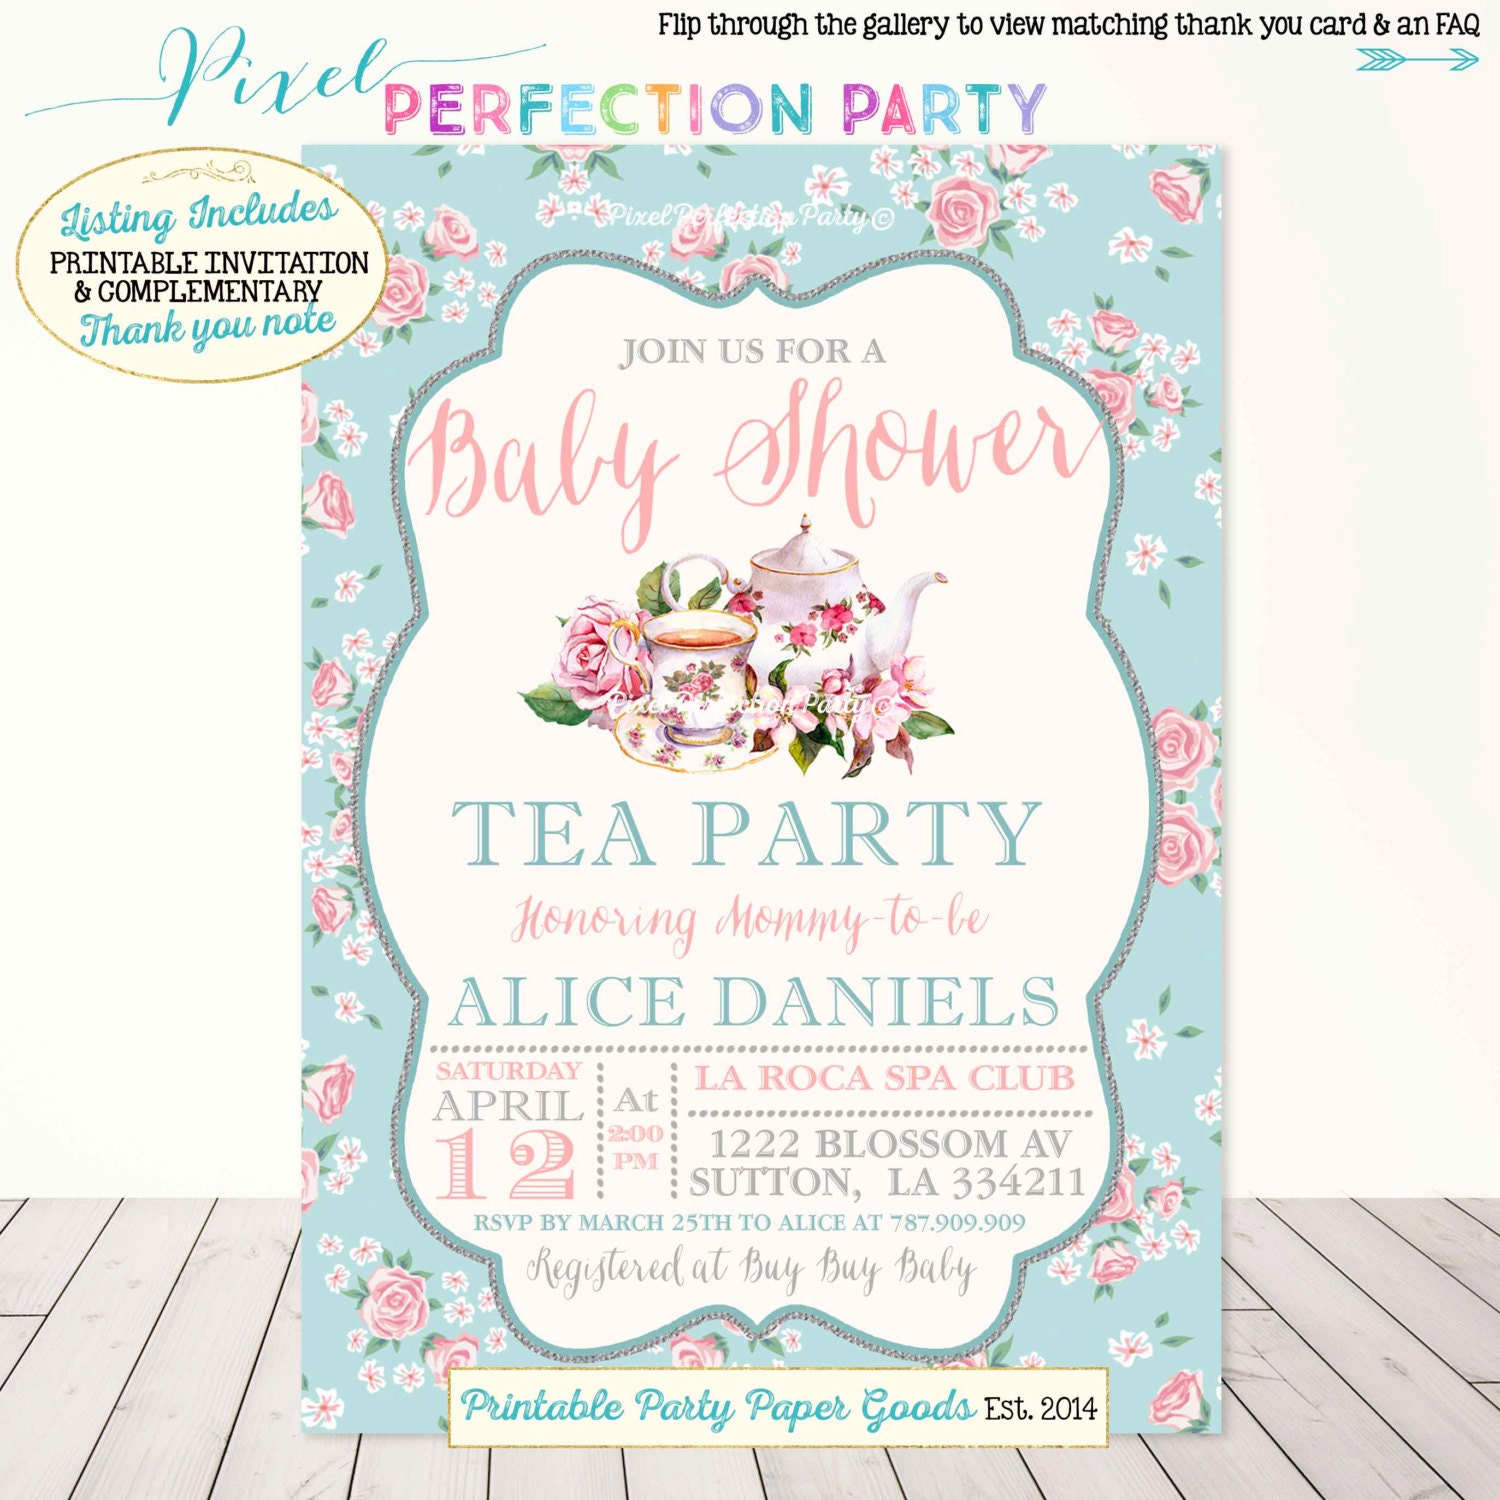 Tea party baby shower invitation vintage tea party baby shower tea party baby shower invitation vintage tea party baby shower invitation a baby is brewing shower shabby chic rose tea party baby shower filmwisefo Gallery